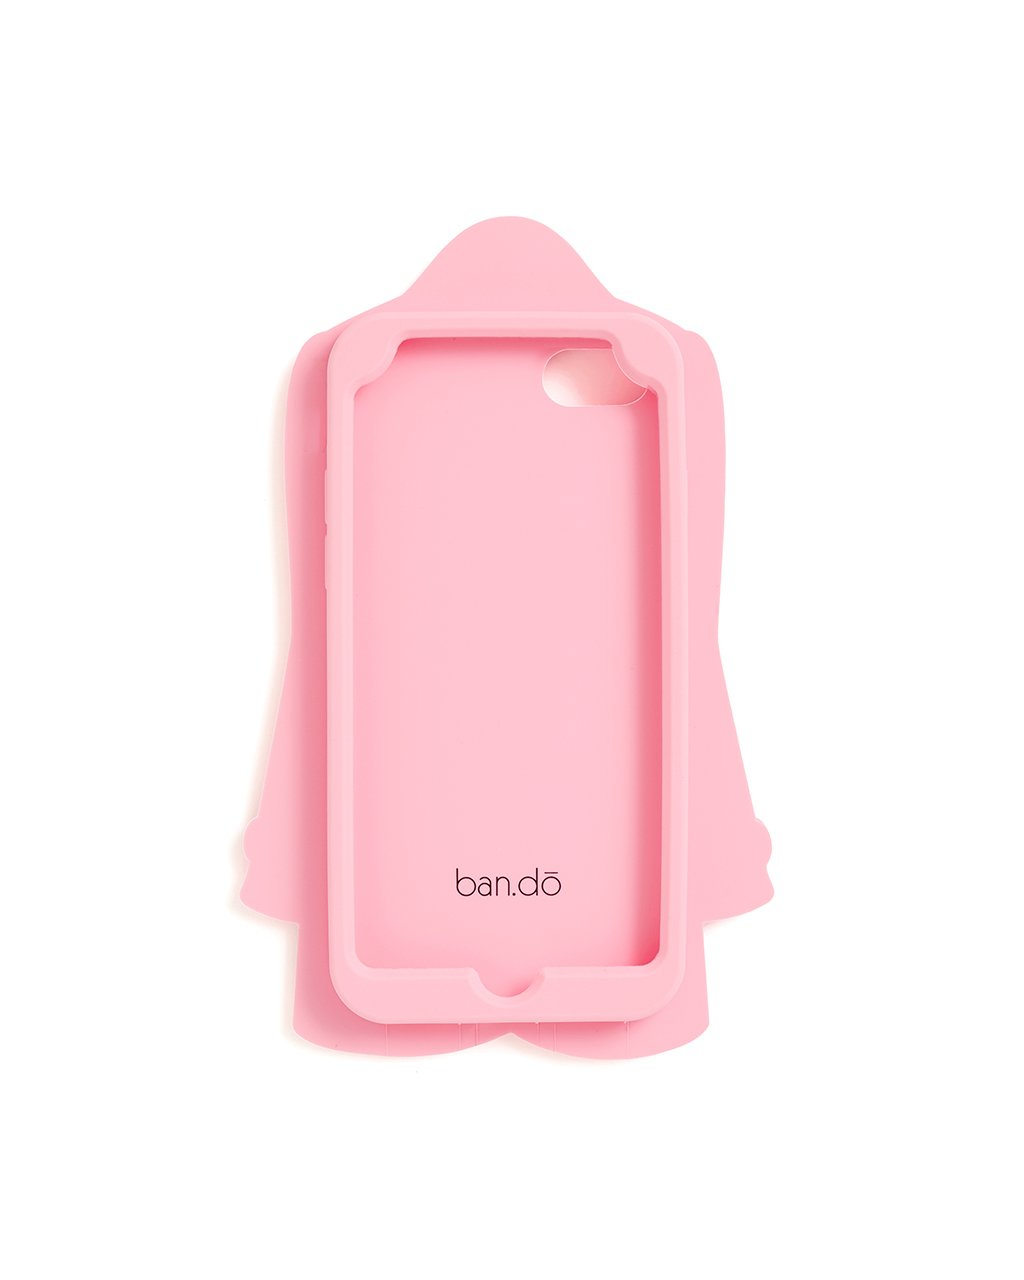 silicone iphone case - business suit